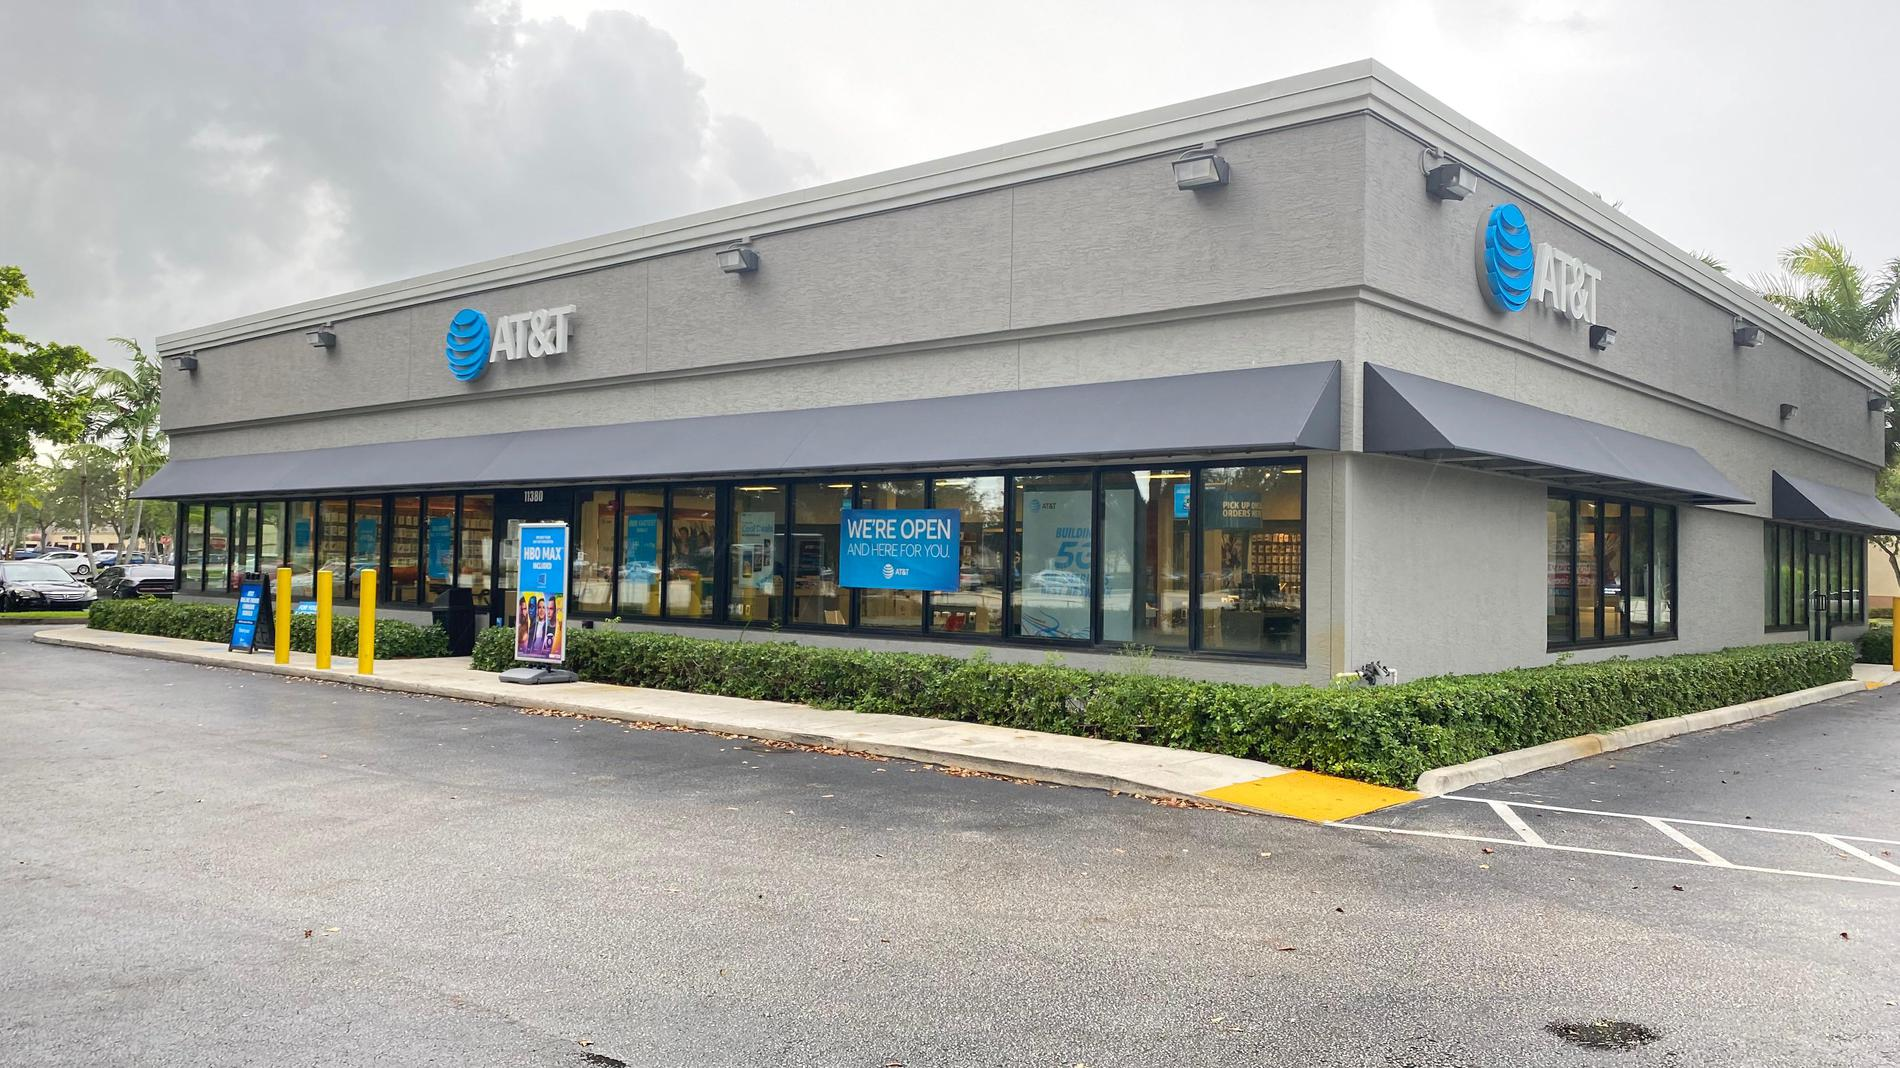 pines plaza store apple iphone 12 and samsung devices pembroke pines fl at t pembroke pines fl